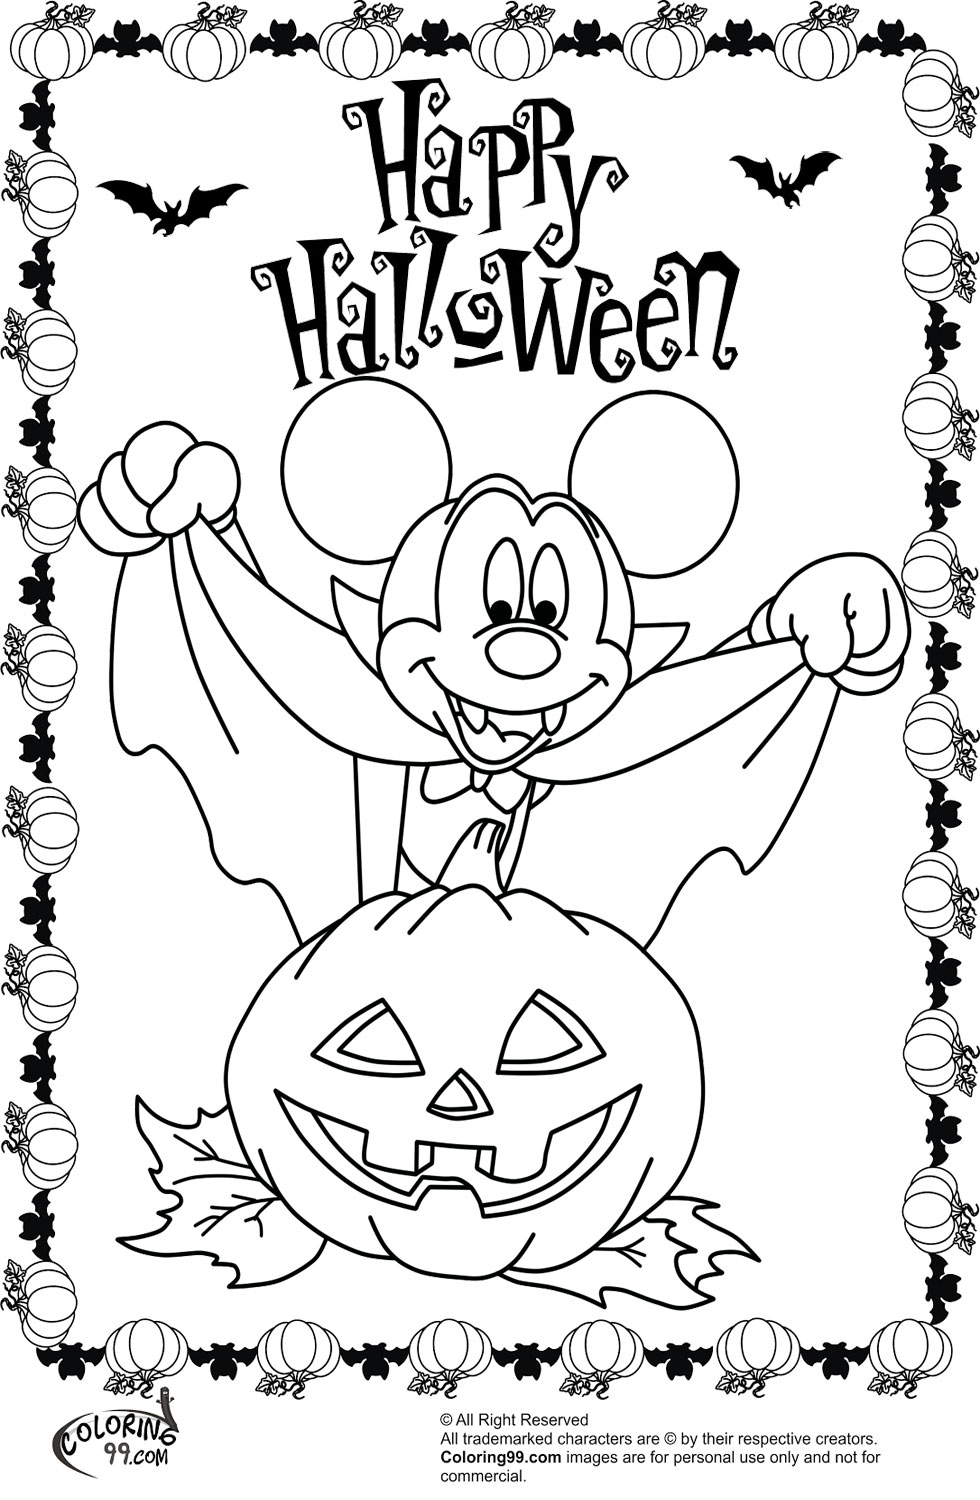 Minnie and Mickey Mouse Coloring Pages for Halloween ...